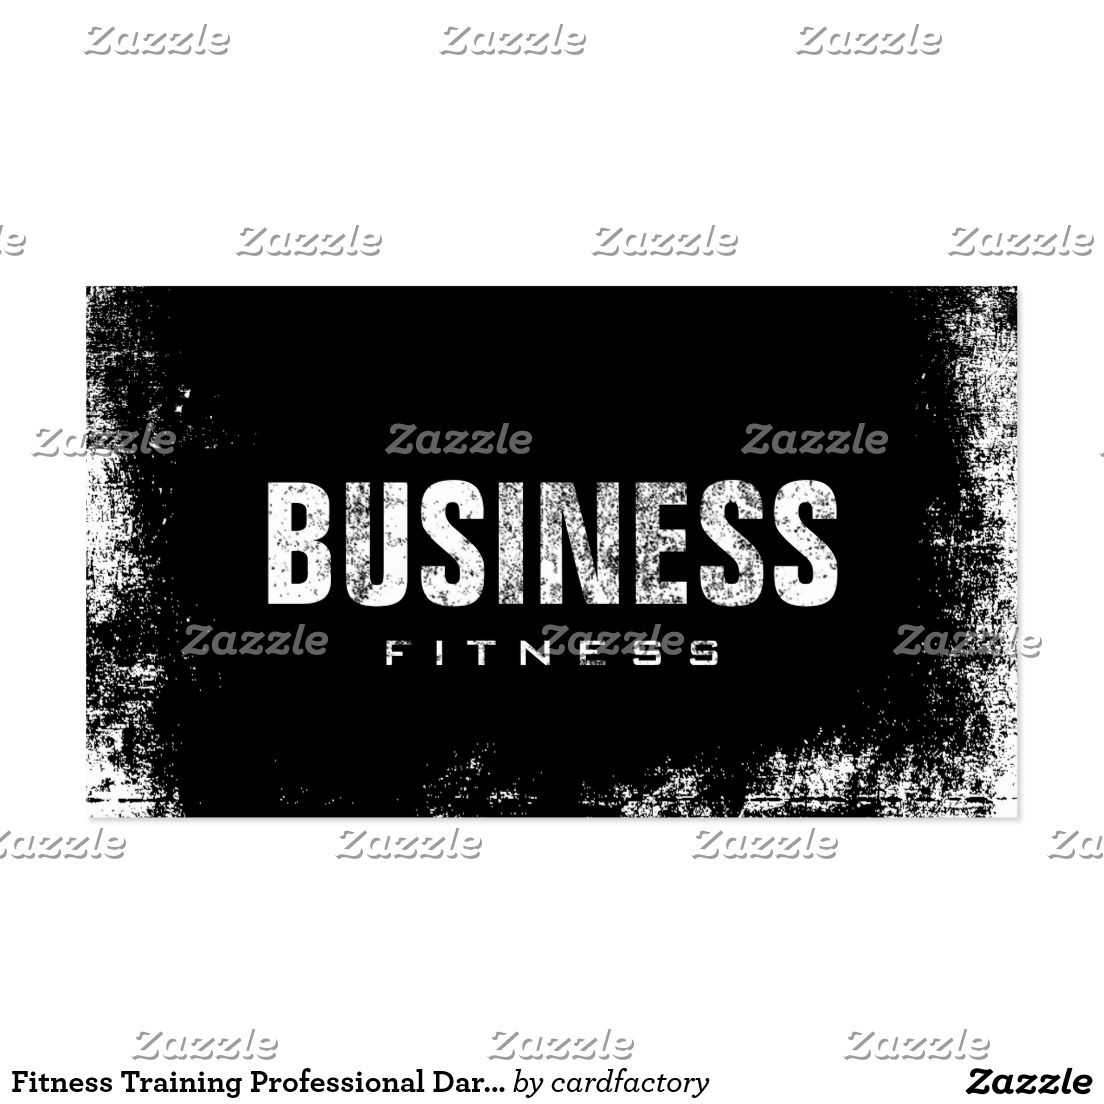 Fitness Training Professional Dark Grunge Business Card #fitness #training #professional #dark #grunge #business #card